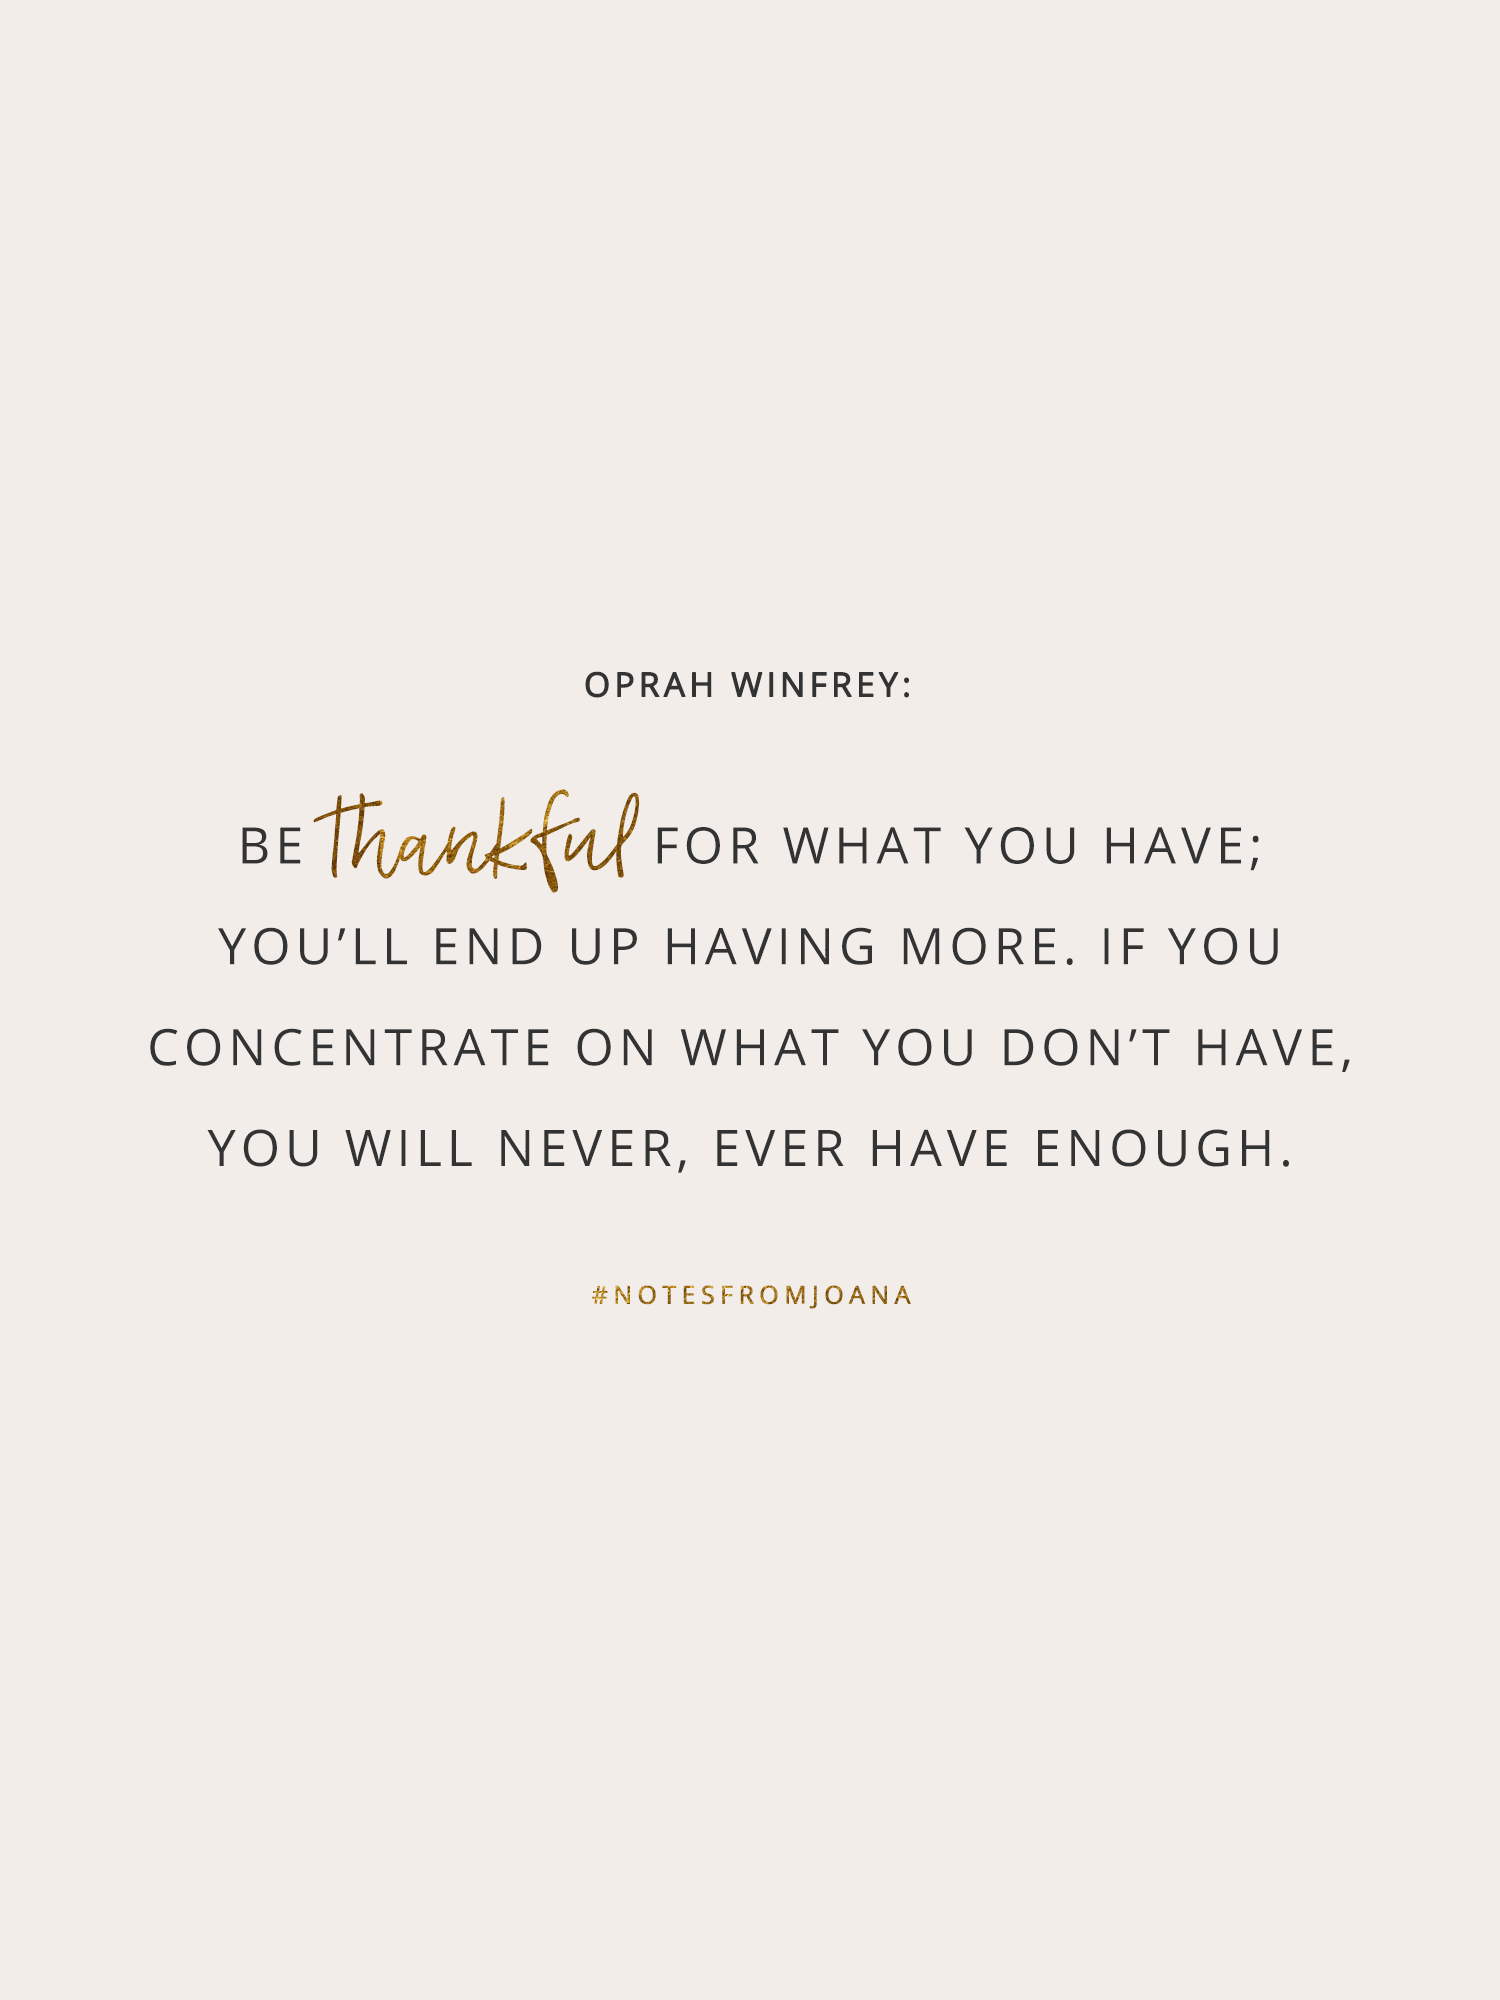 20 Inspirational Quotes To Help You Become Your Best Self. Be thankful for what you have; you'll end up having more. I you concentrate on what you don't have, you will never, ever have enough. OPRAH WINFREY // Notes from Joana